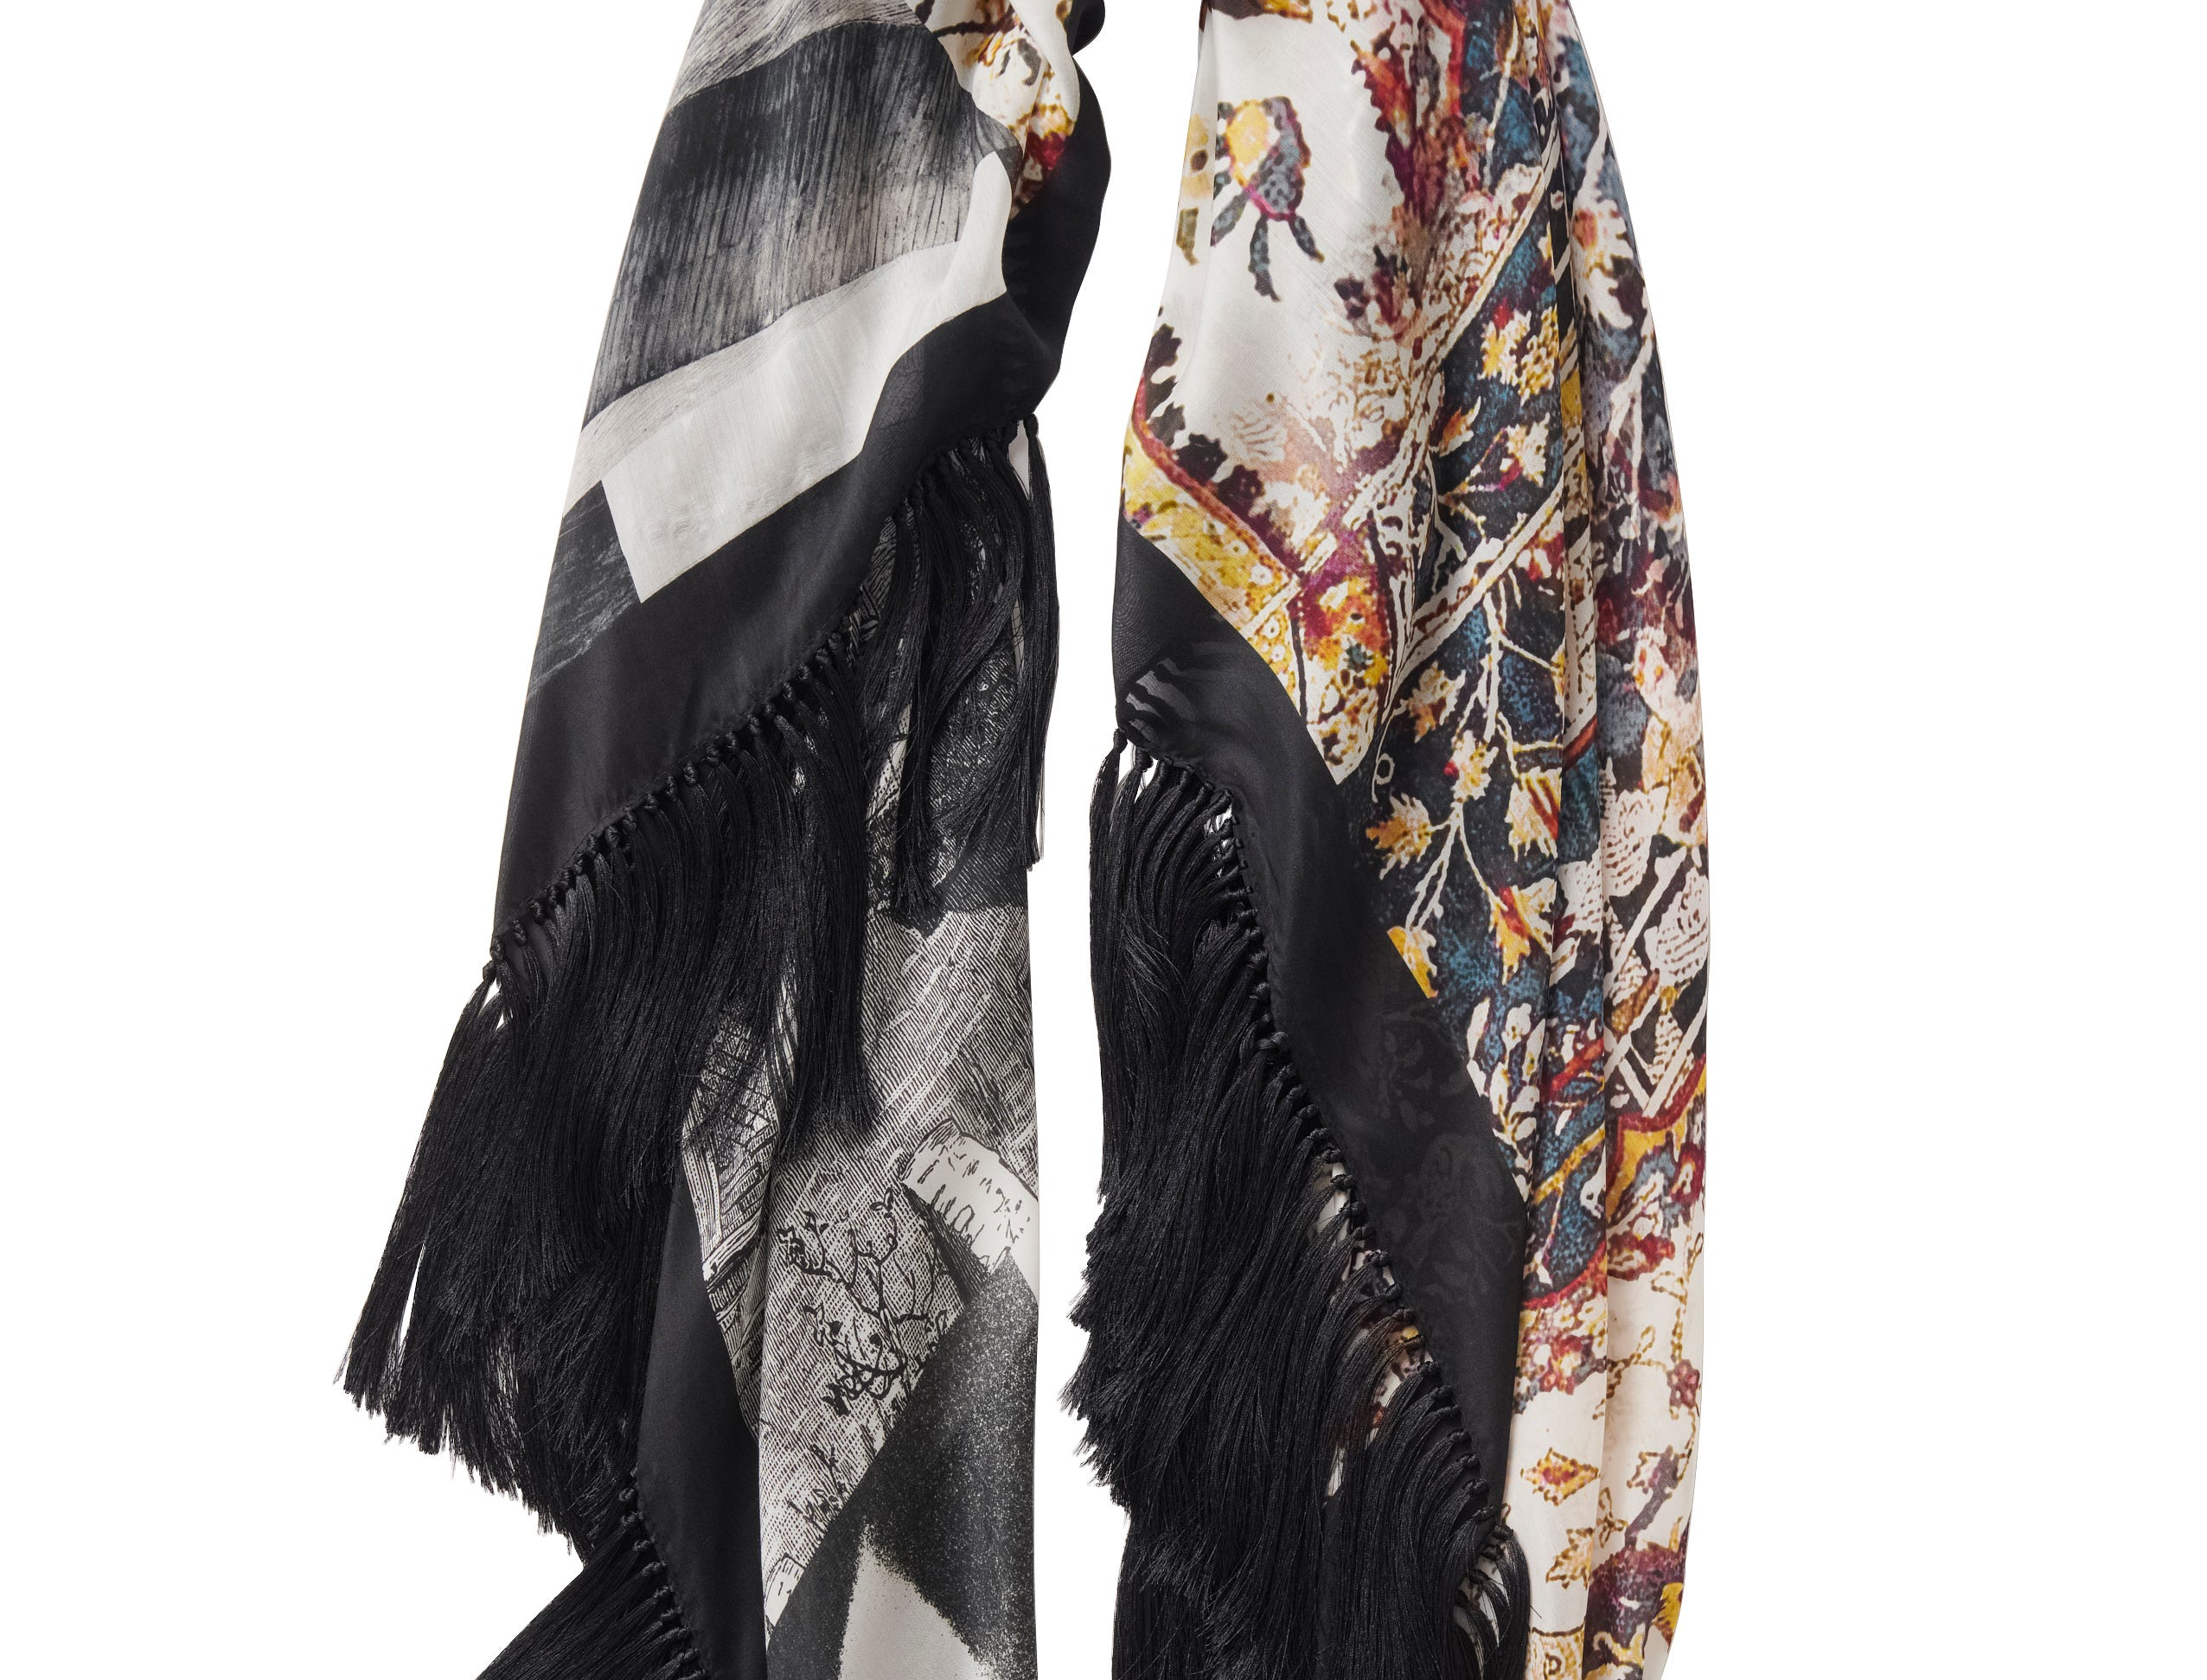 H&M says products consisting of at least 50% sustainable material are labeled with a Conscious hang tag. Here, a tencel blend scarf in H&M's Conscious Exclusive collection for autumn and winter priced at $59.99.